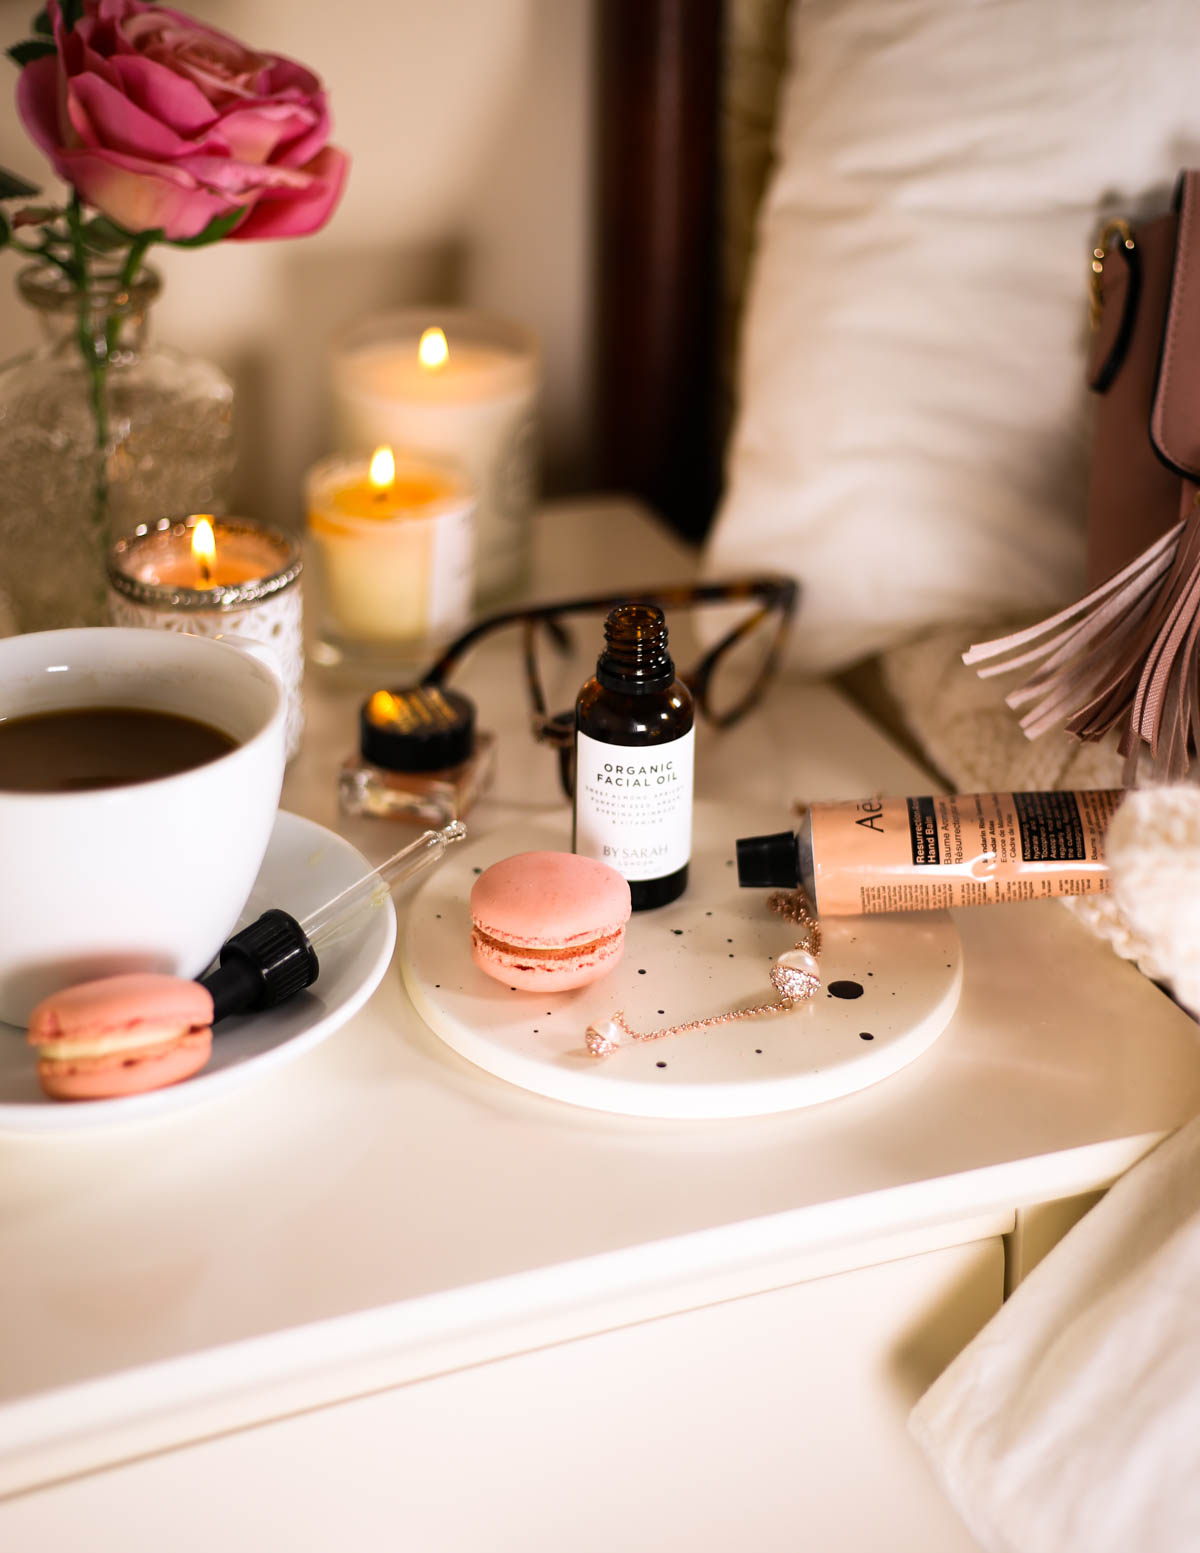 The Organic Facial Oil You Need to Know About- By Sarah London Organic Facial Oil with pipette. Styled with book coffee mug, macaron & candles